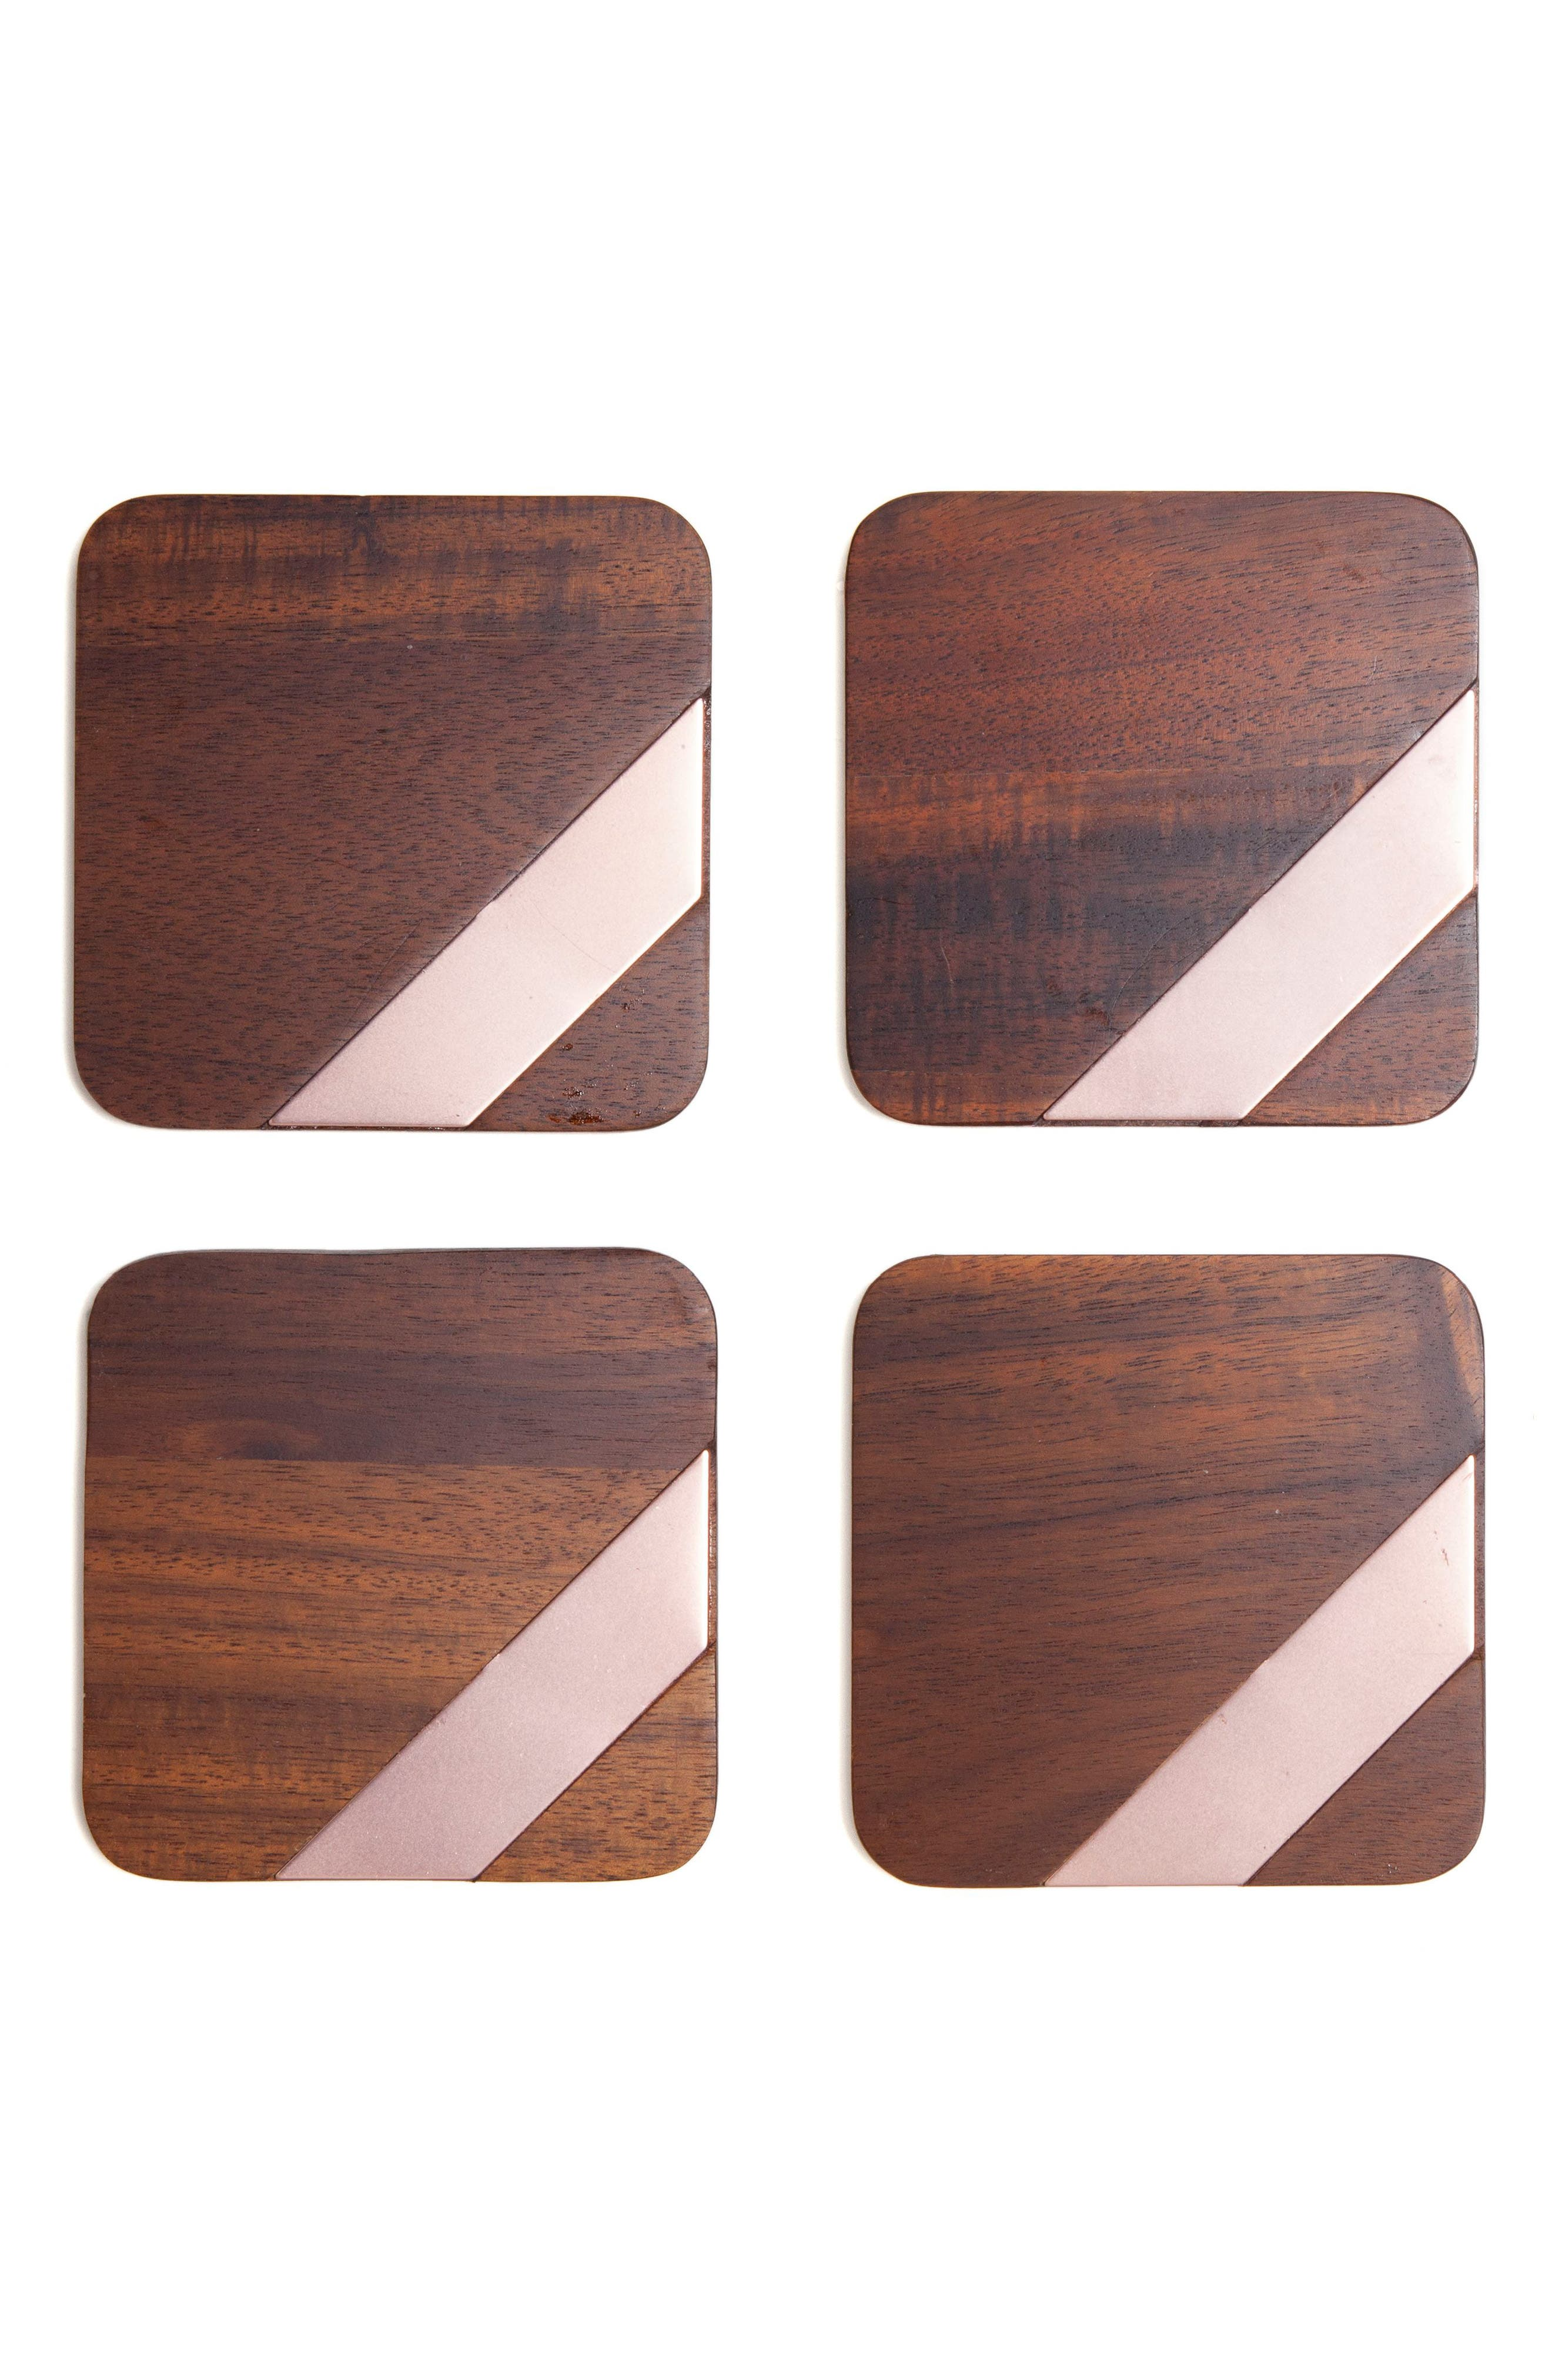 Main Image - Core Home Set of 4 Wood & Copper Coasters